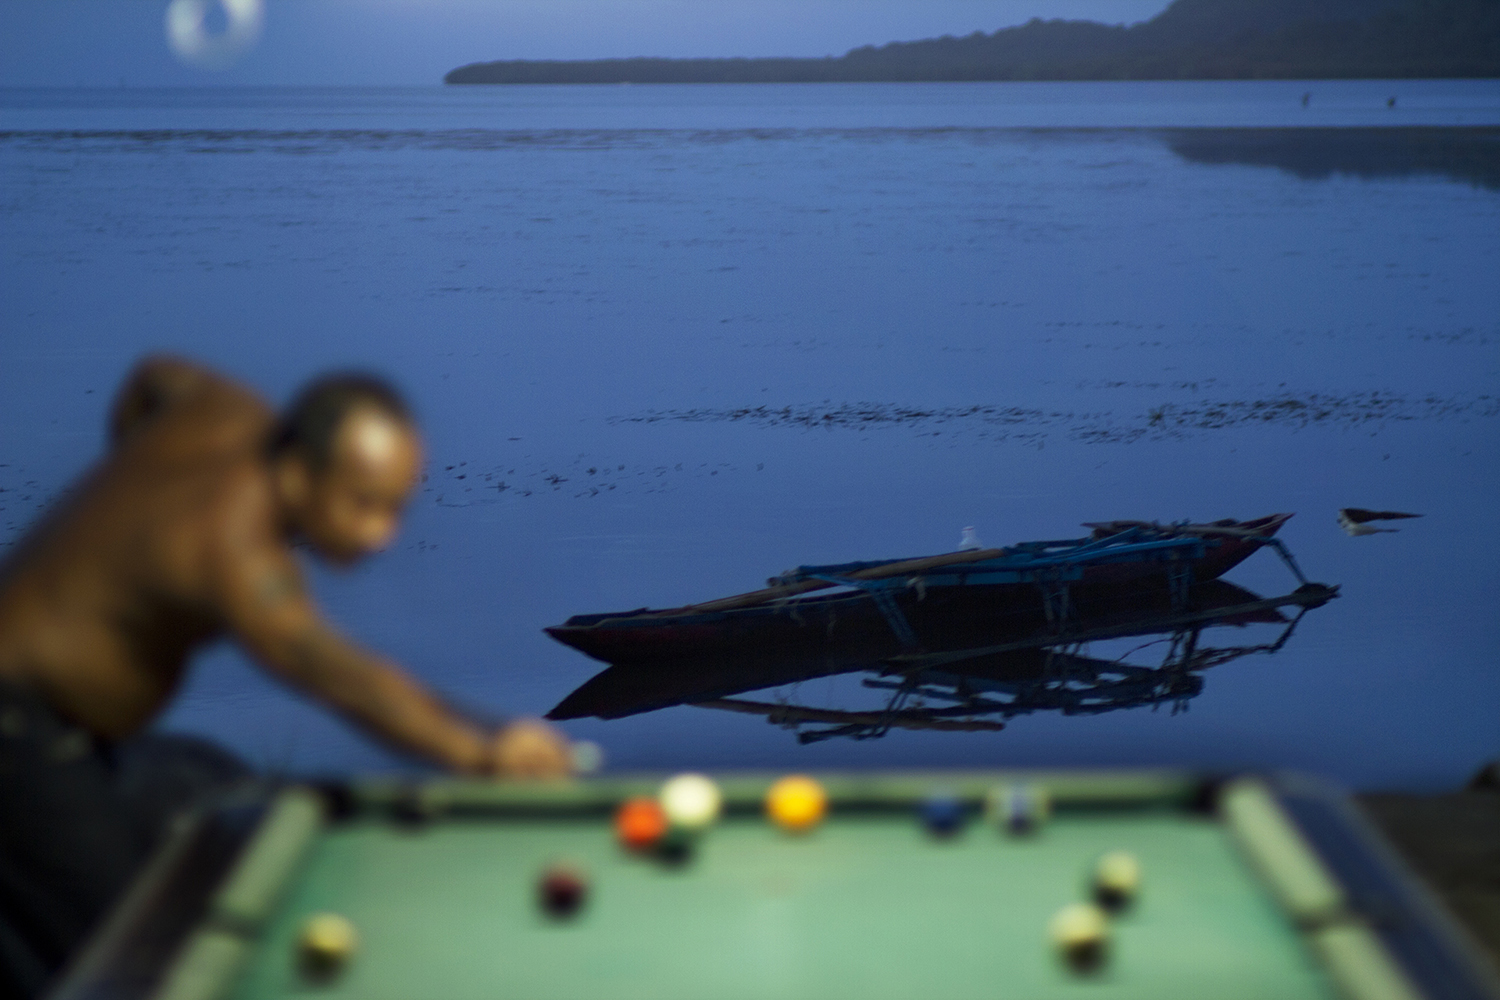 <p>Shootingpool at a house on the water in Nett.</p>